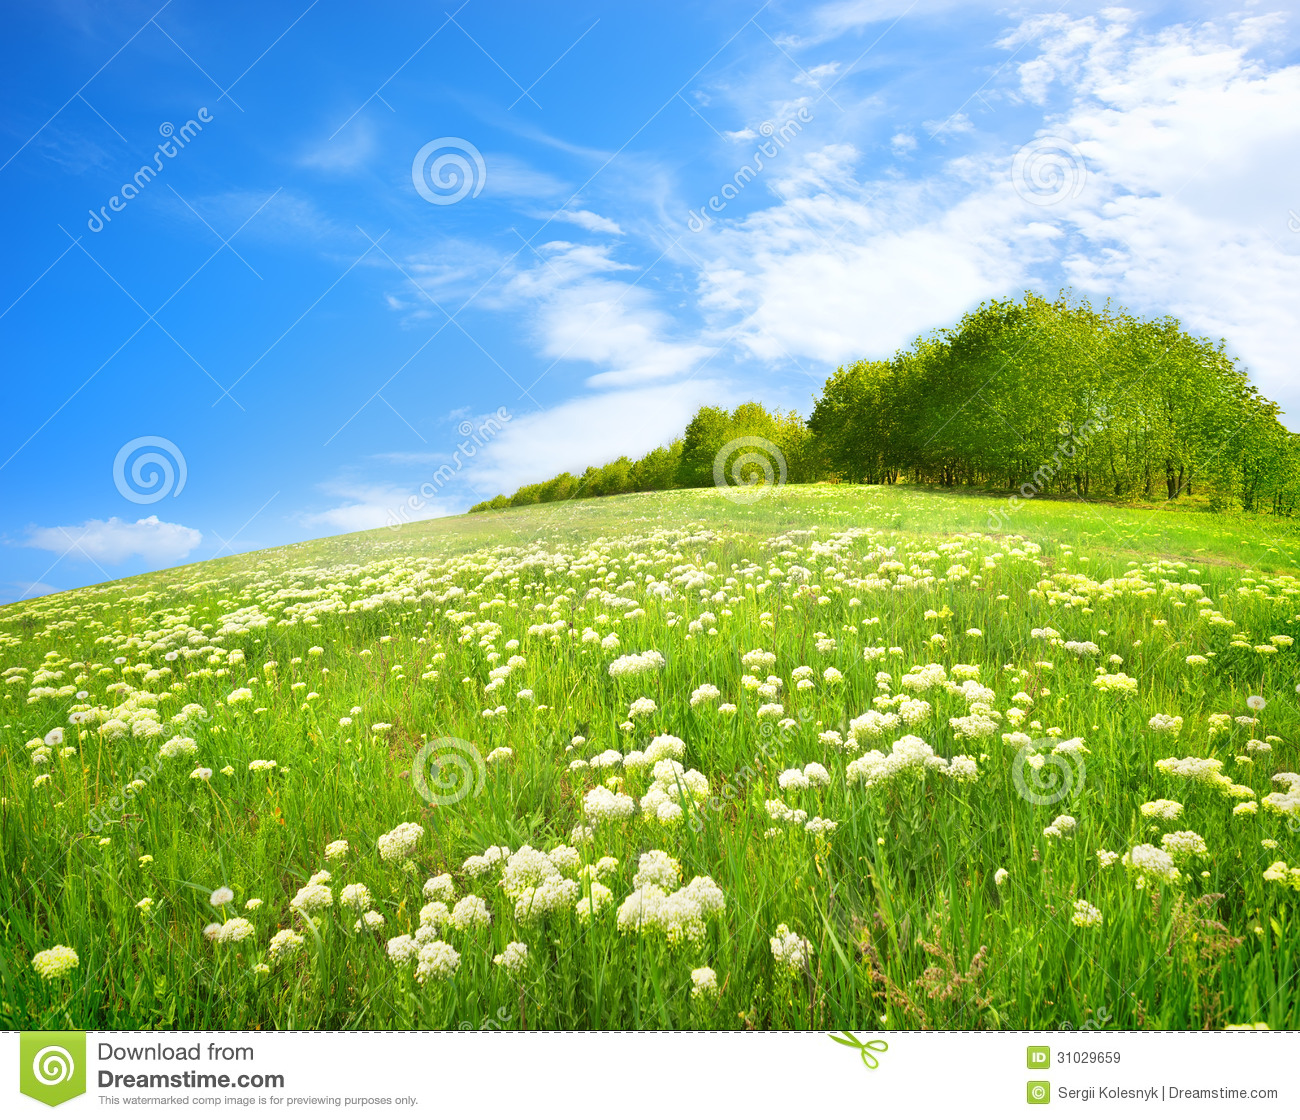 Field Of White Flowers Related Keywords & Suggestions -Field Of White ...